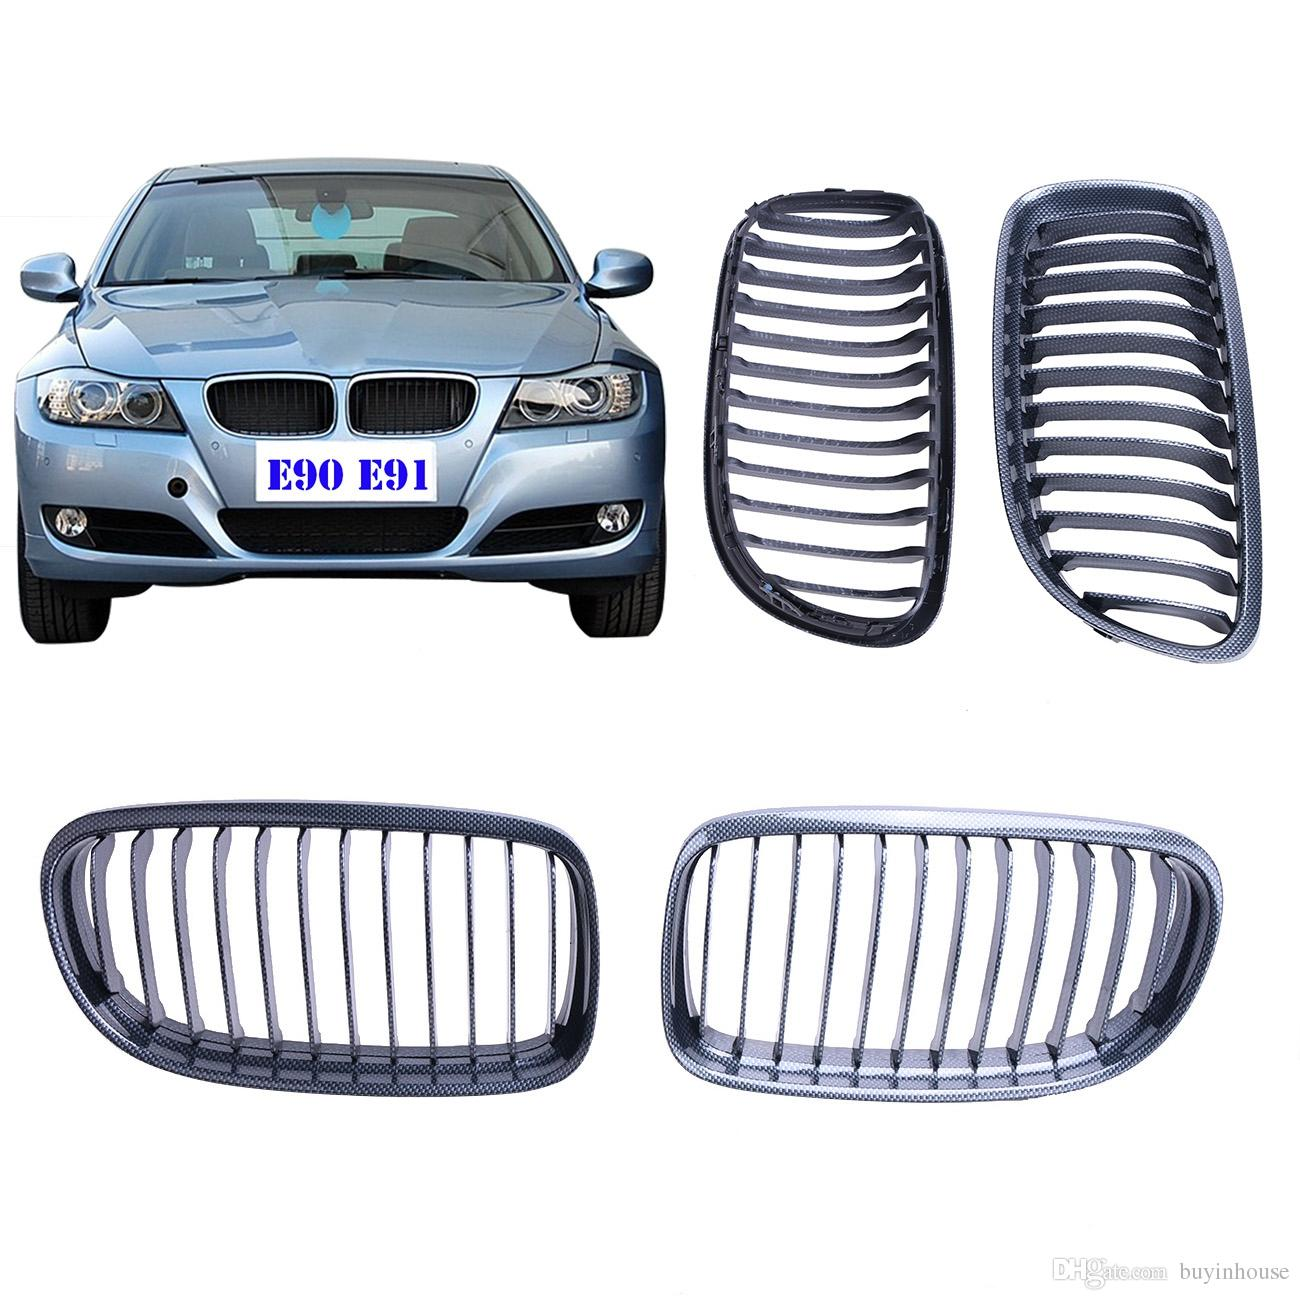 hight resolution of 2019 for bmw e90 lci 2009 2010 2011 carbon fiber look front grill kidney grilles lattice for 3 series 328i 325i 323i m sport p294 from buyinhouse